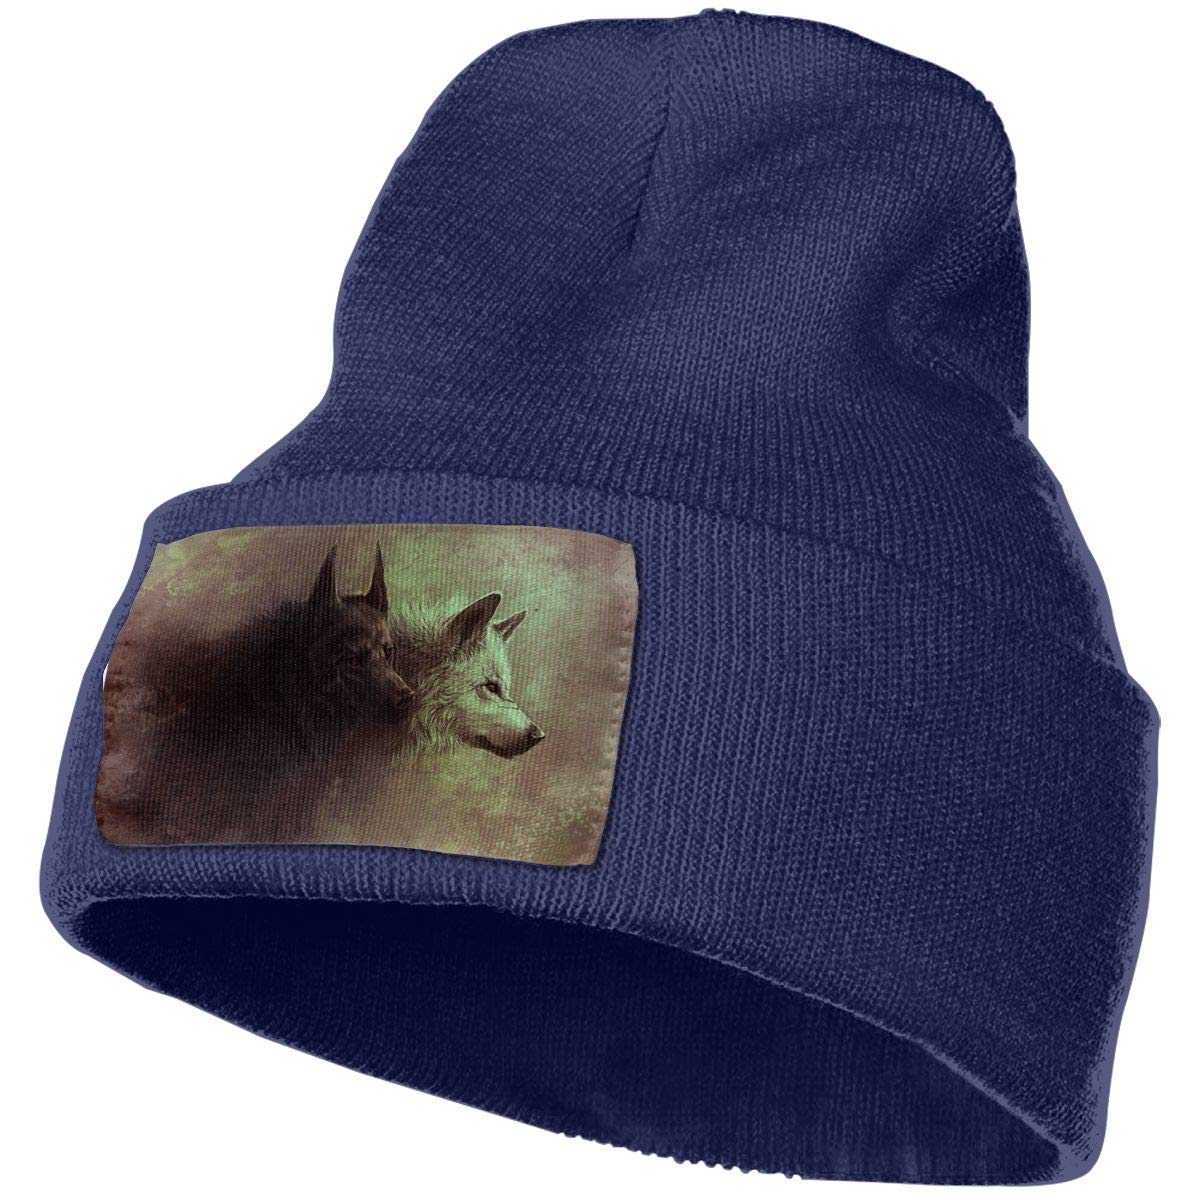 Wolf-Animals Warm Knit Winter Solid Beanie Hat Unisex Skull Cap